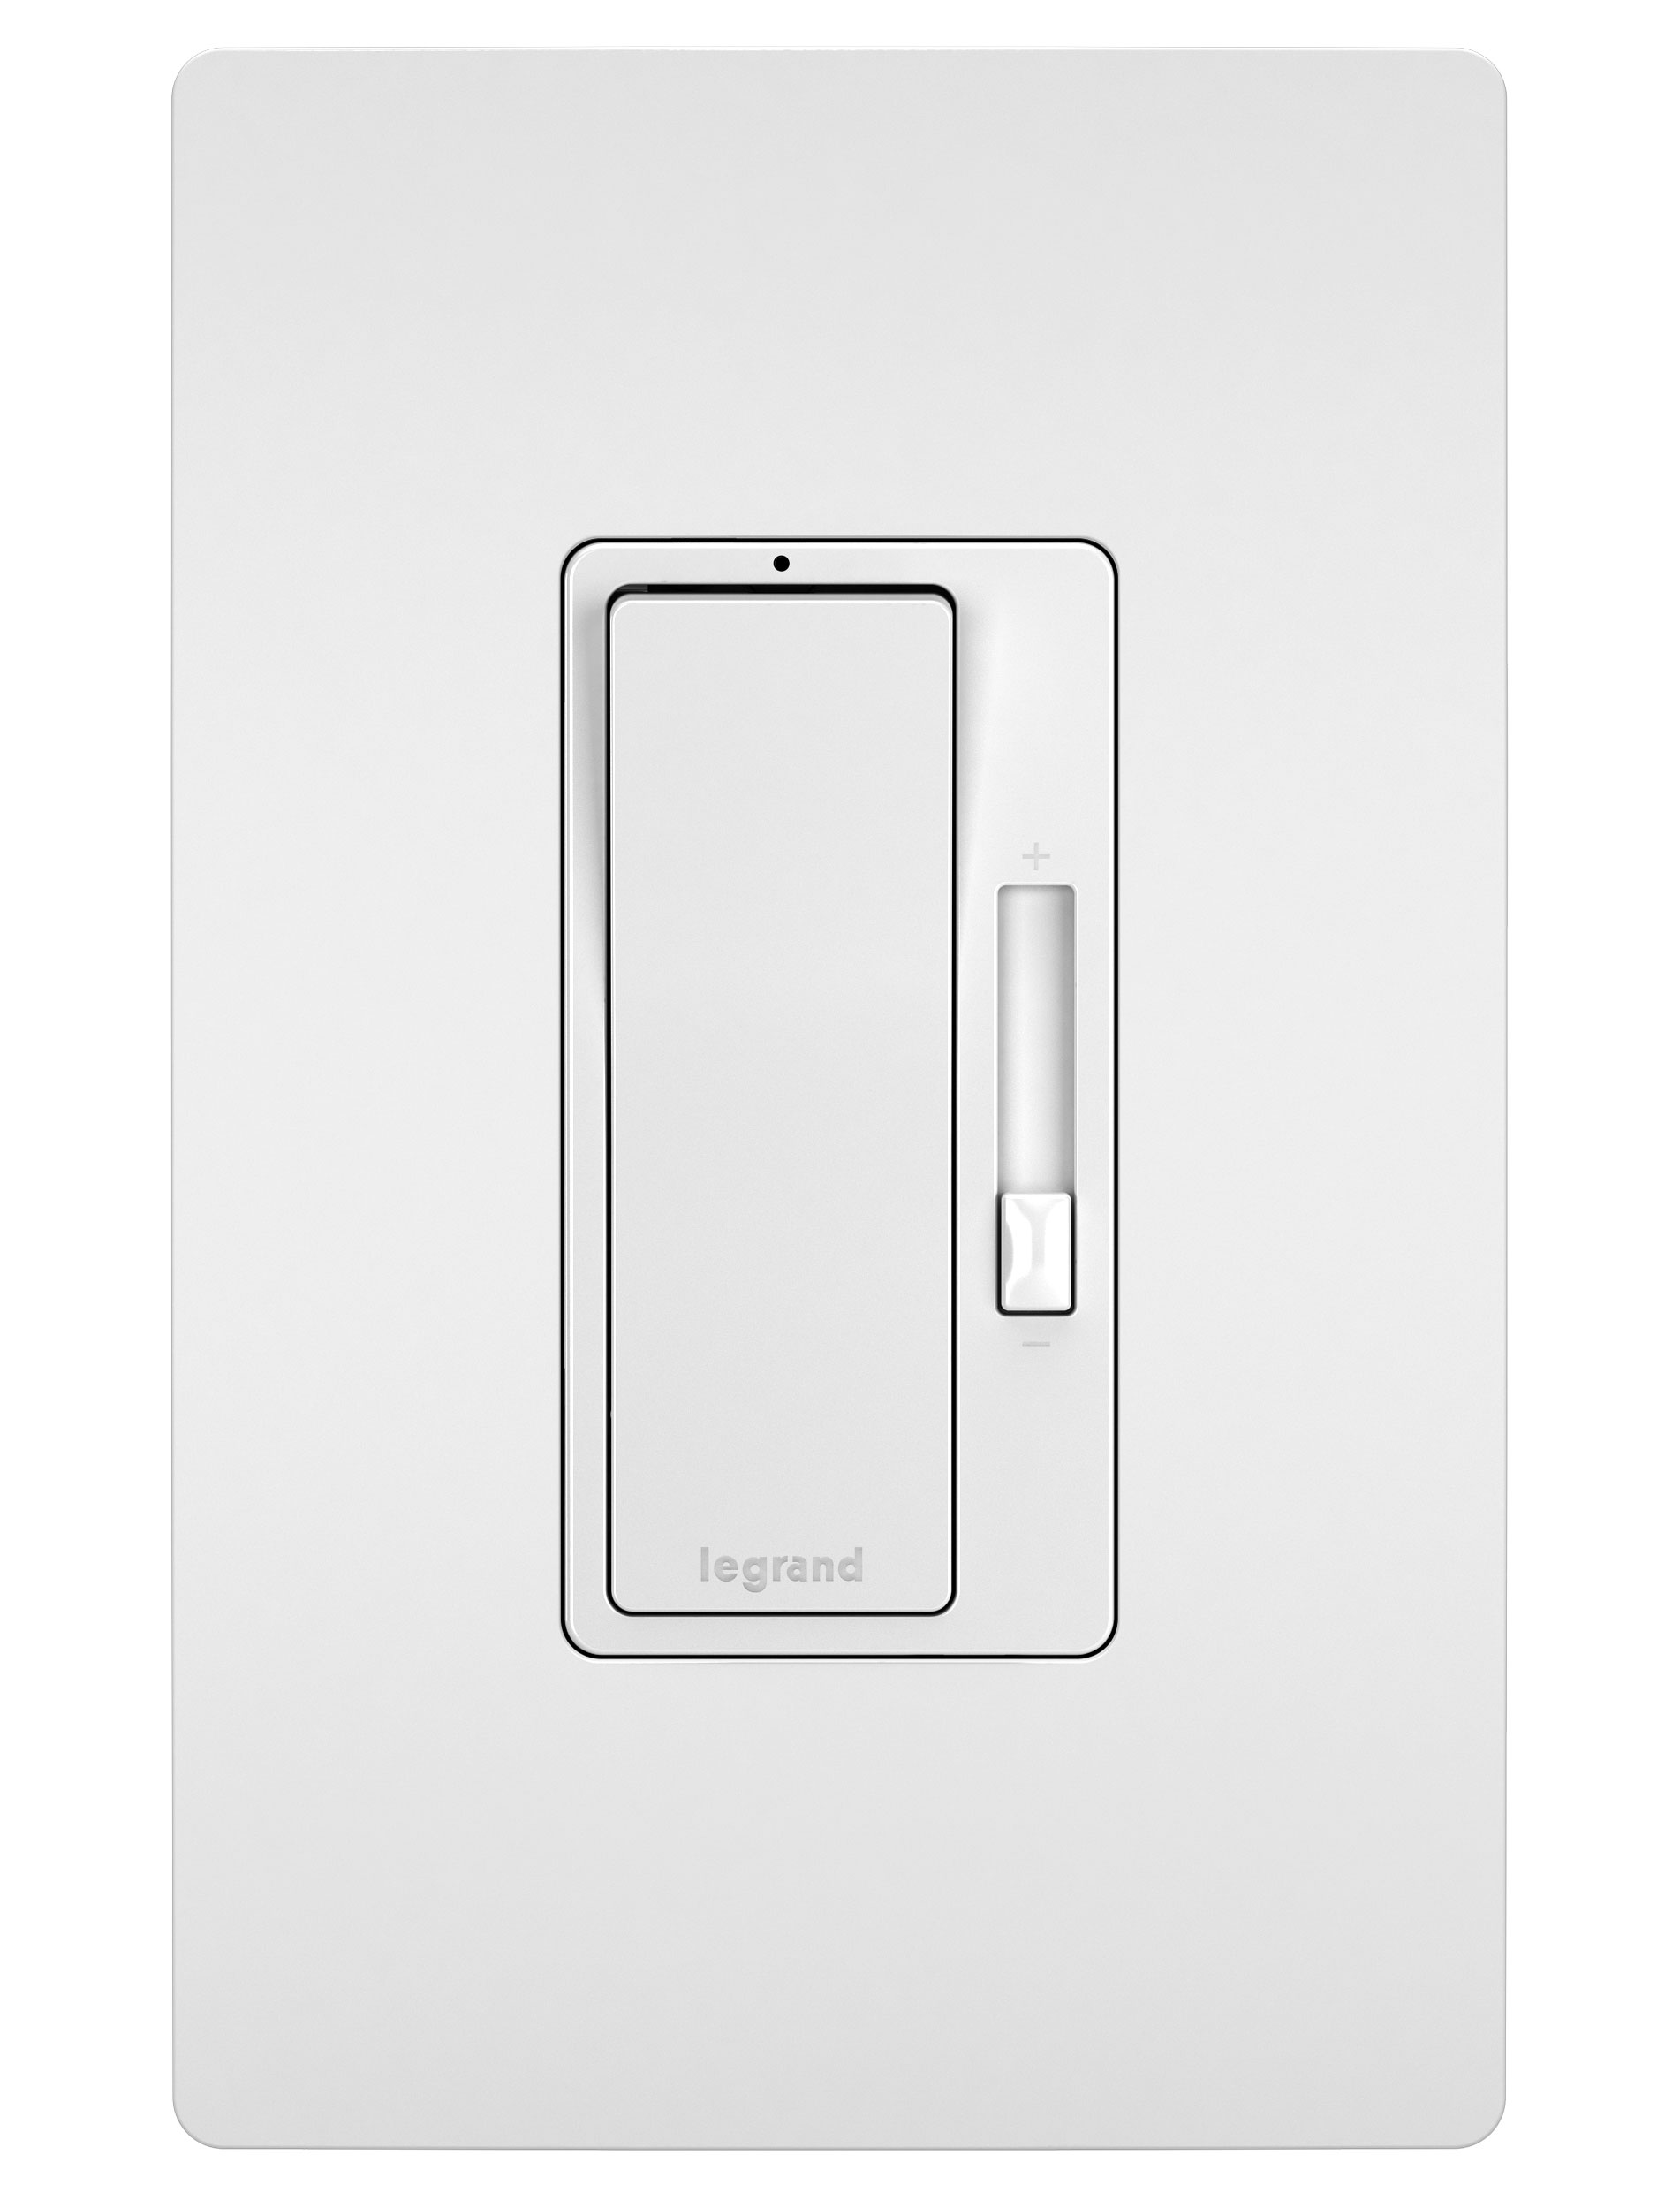 Legrand Radiant RH703-PTUW Tru-Universal 1-Pole 3-Way White Wall Box Dimmer